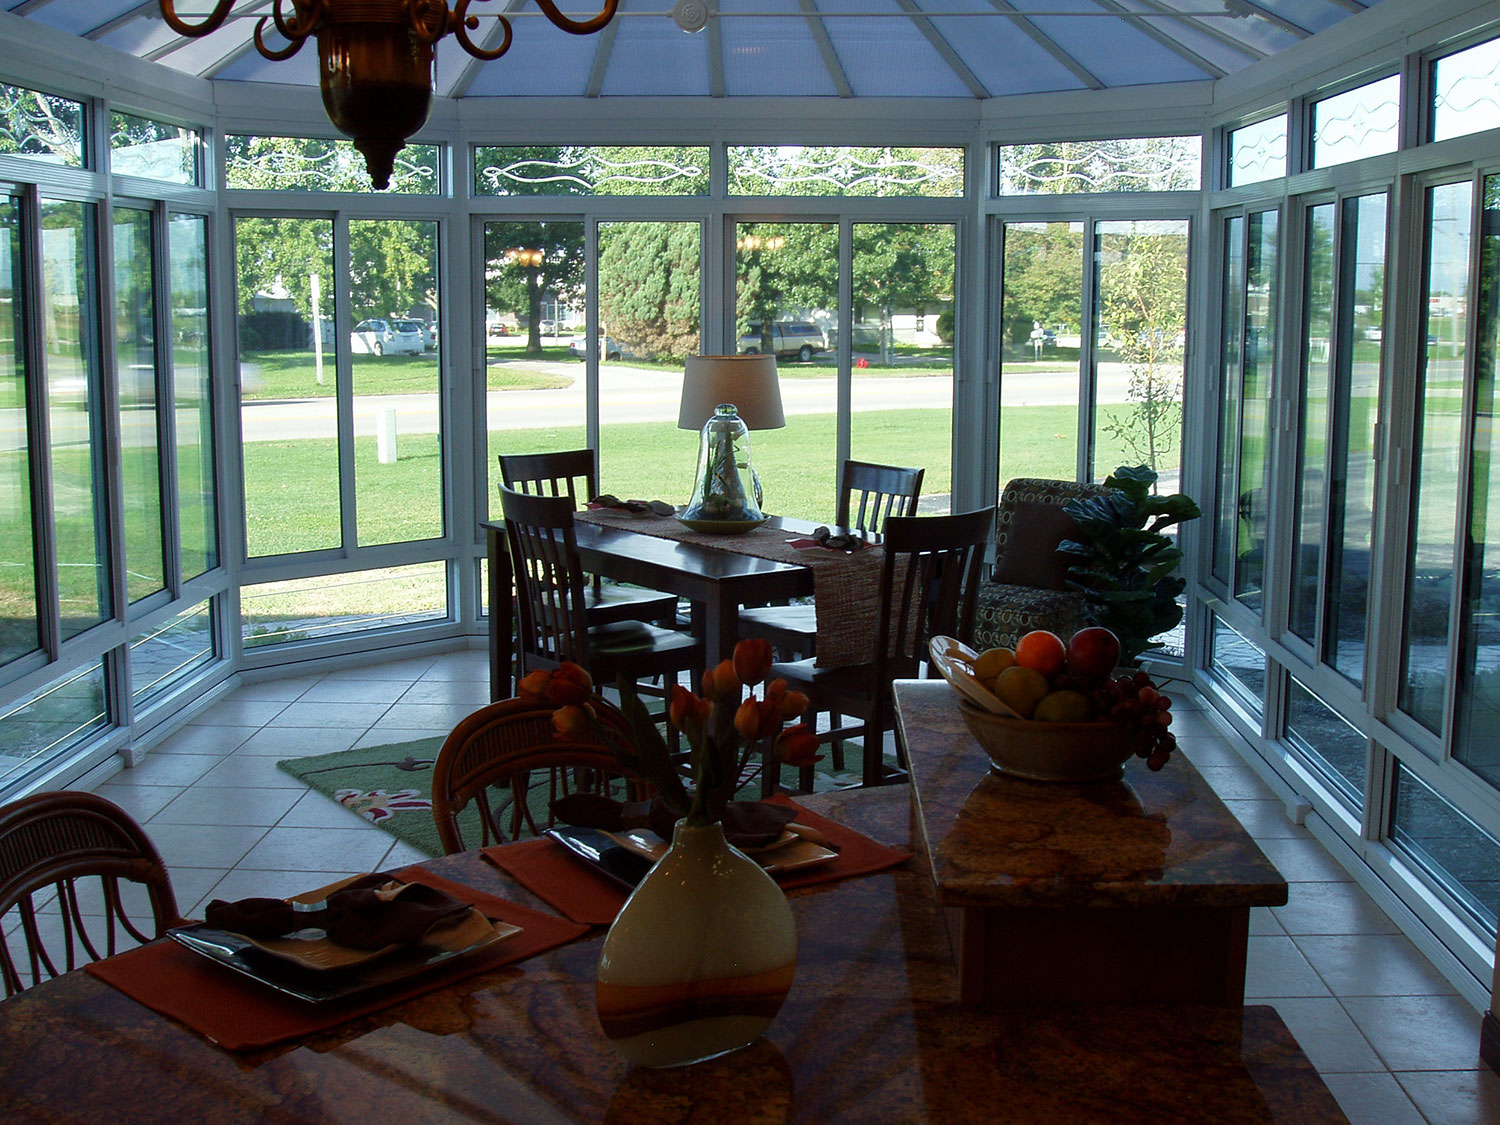 Iowa Conservatory Sunroom Installation | Interior View 2 | Home Town restyling